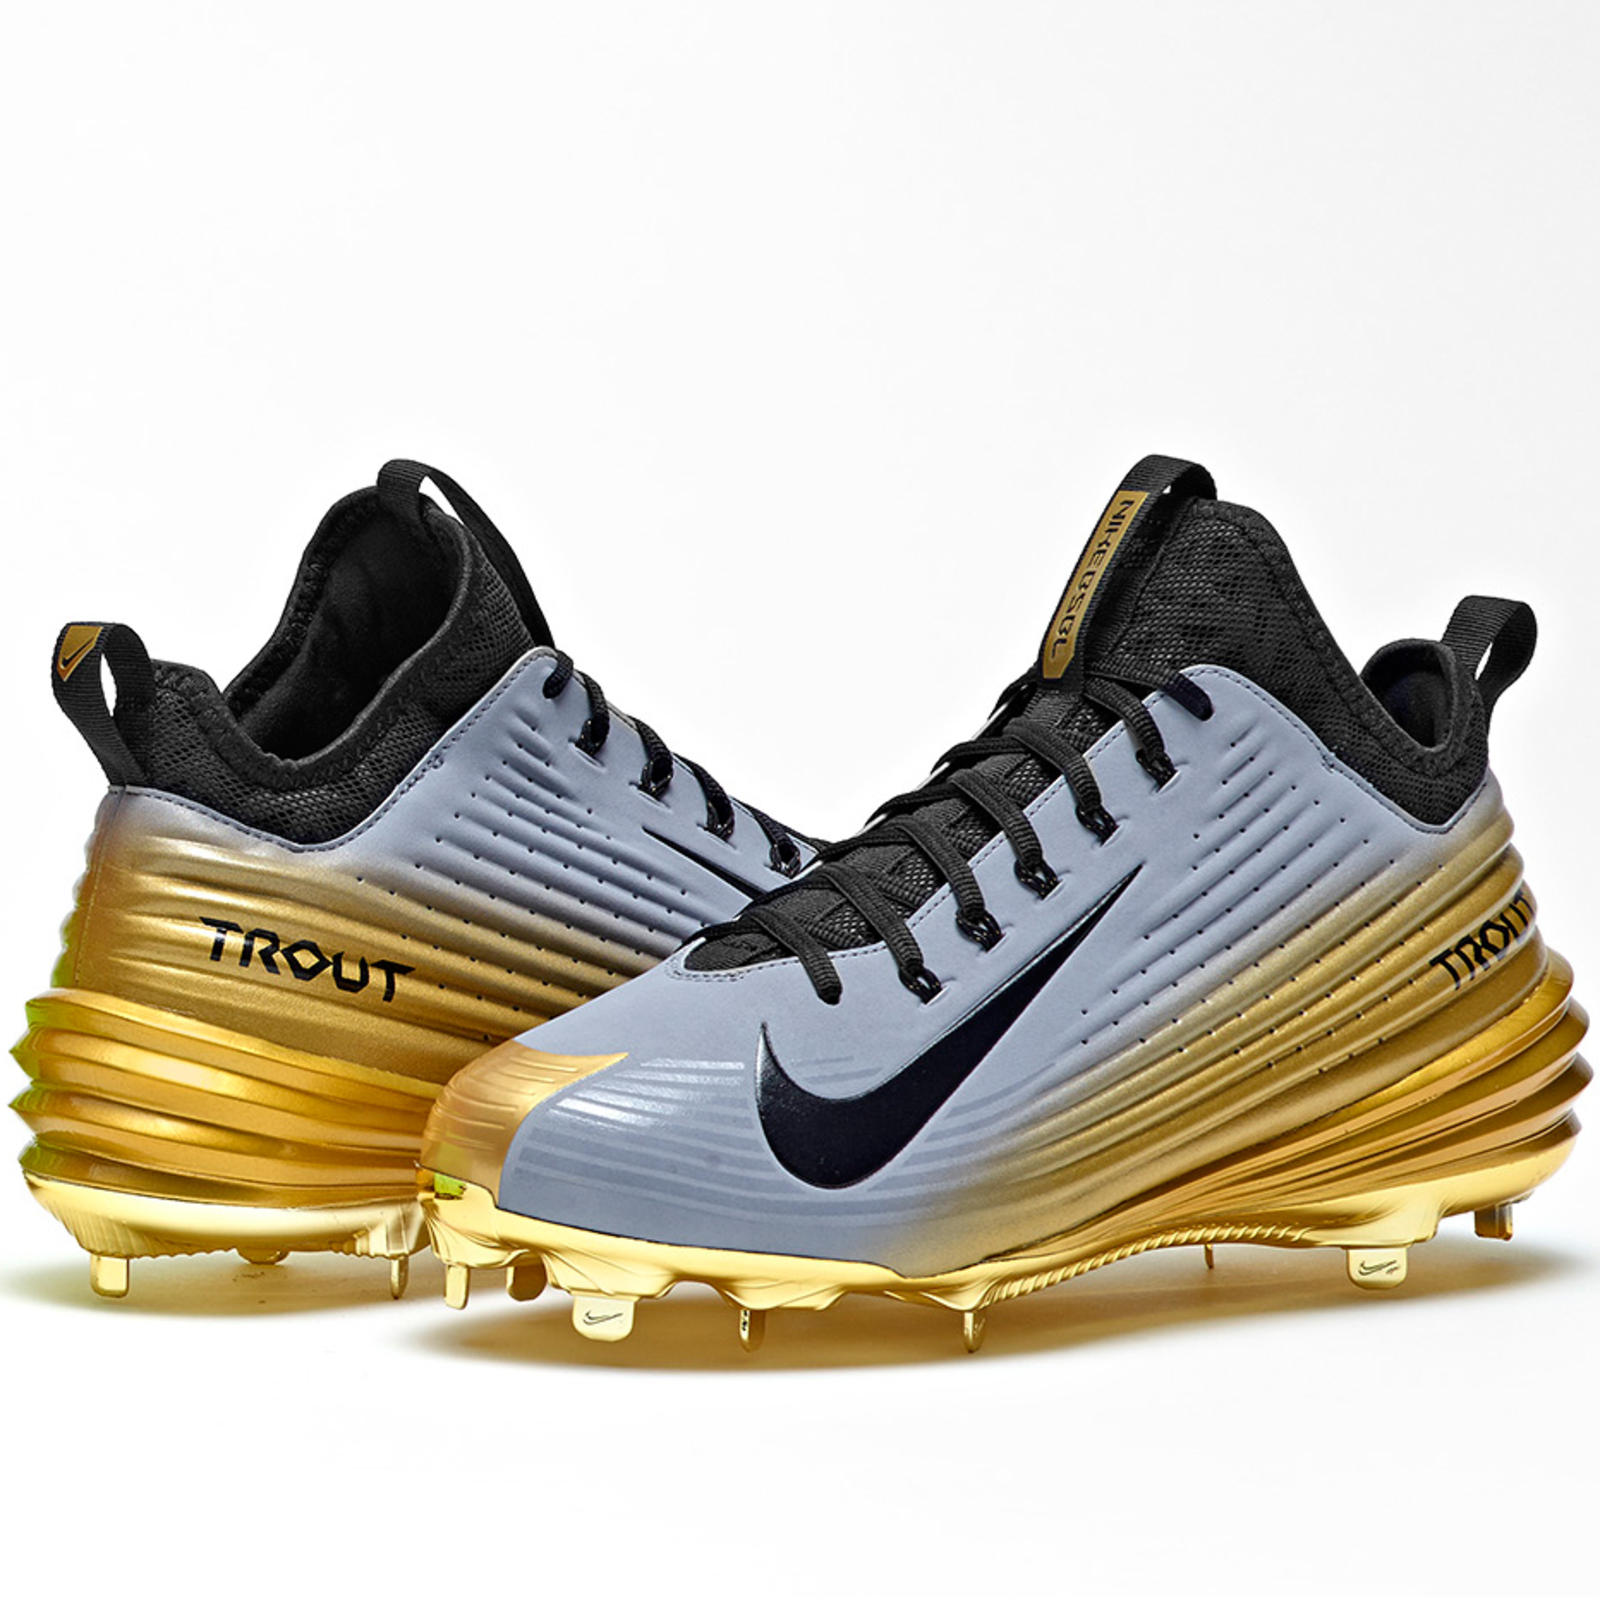 Nike Lunar Vapor Trout Pack Honors Mike Trout's First MVP